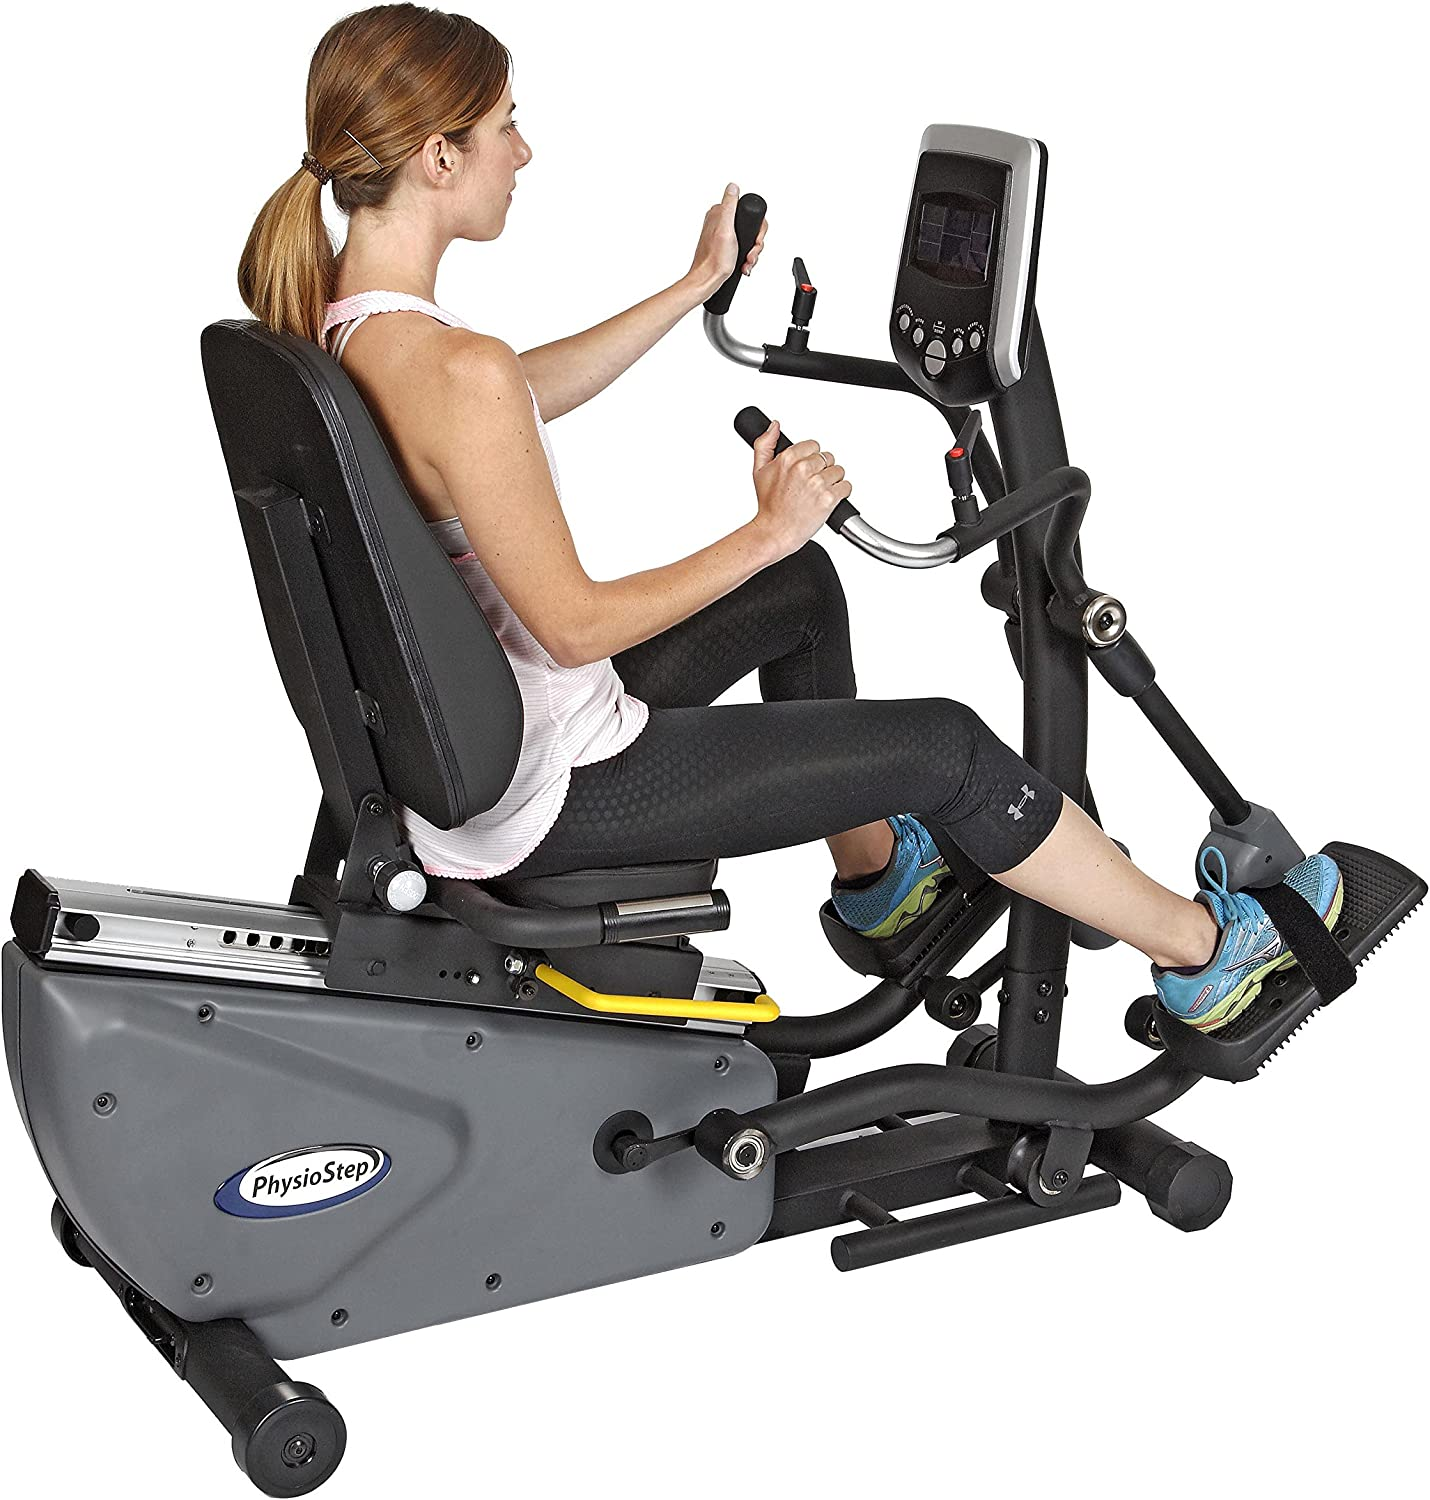 HCI Fitness Physio Step HXT Elliptical